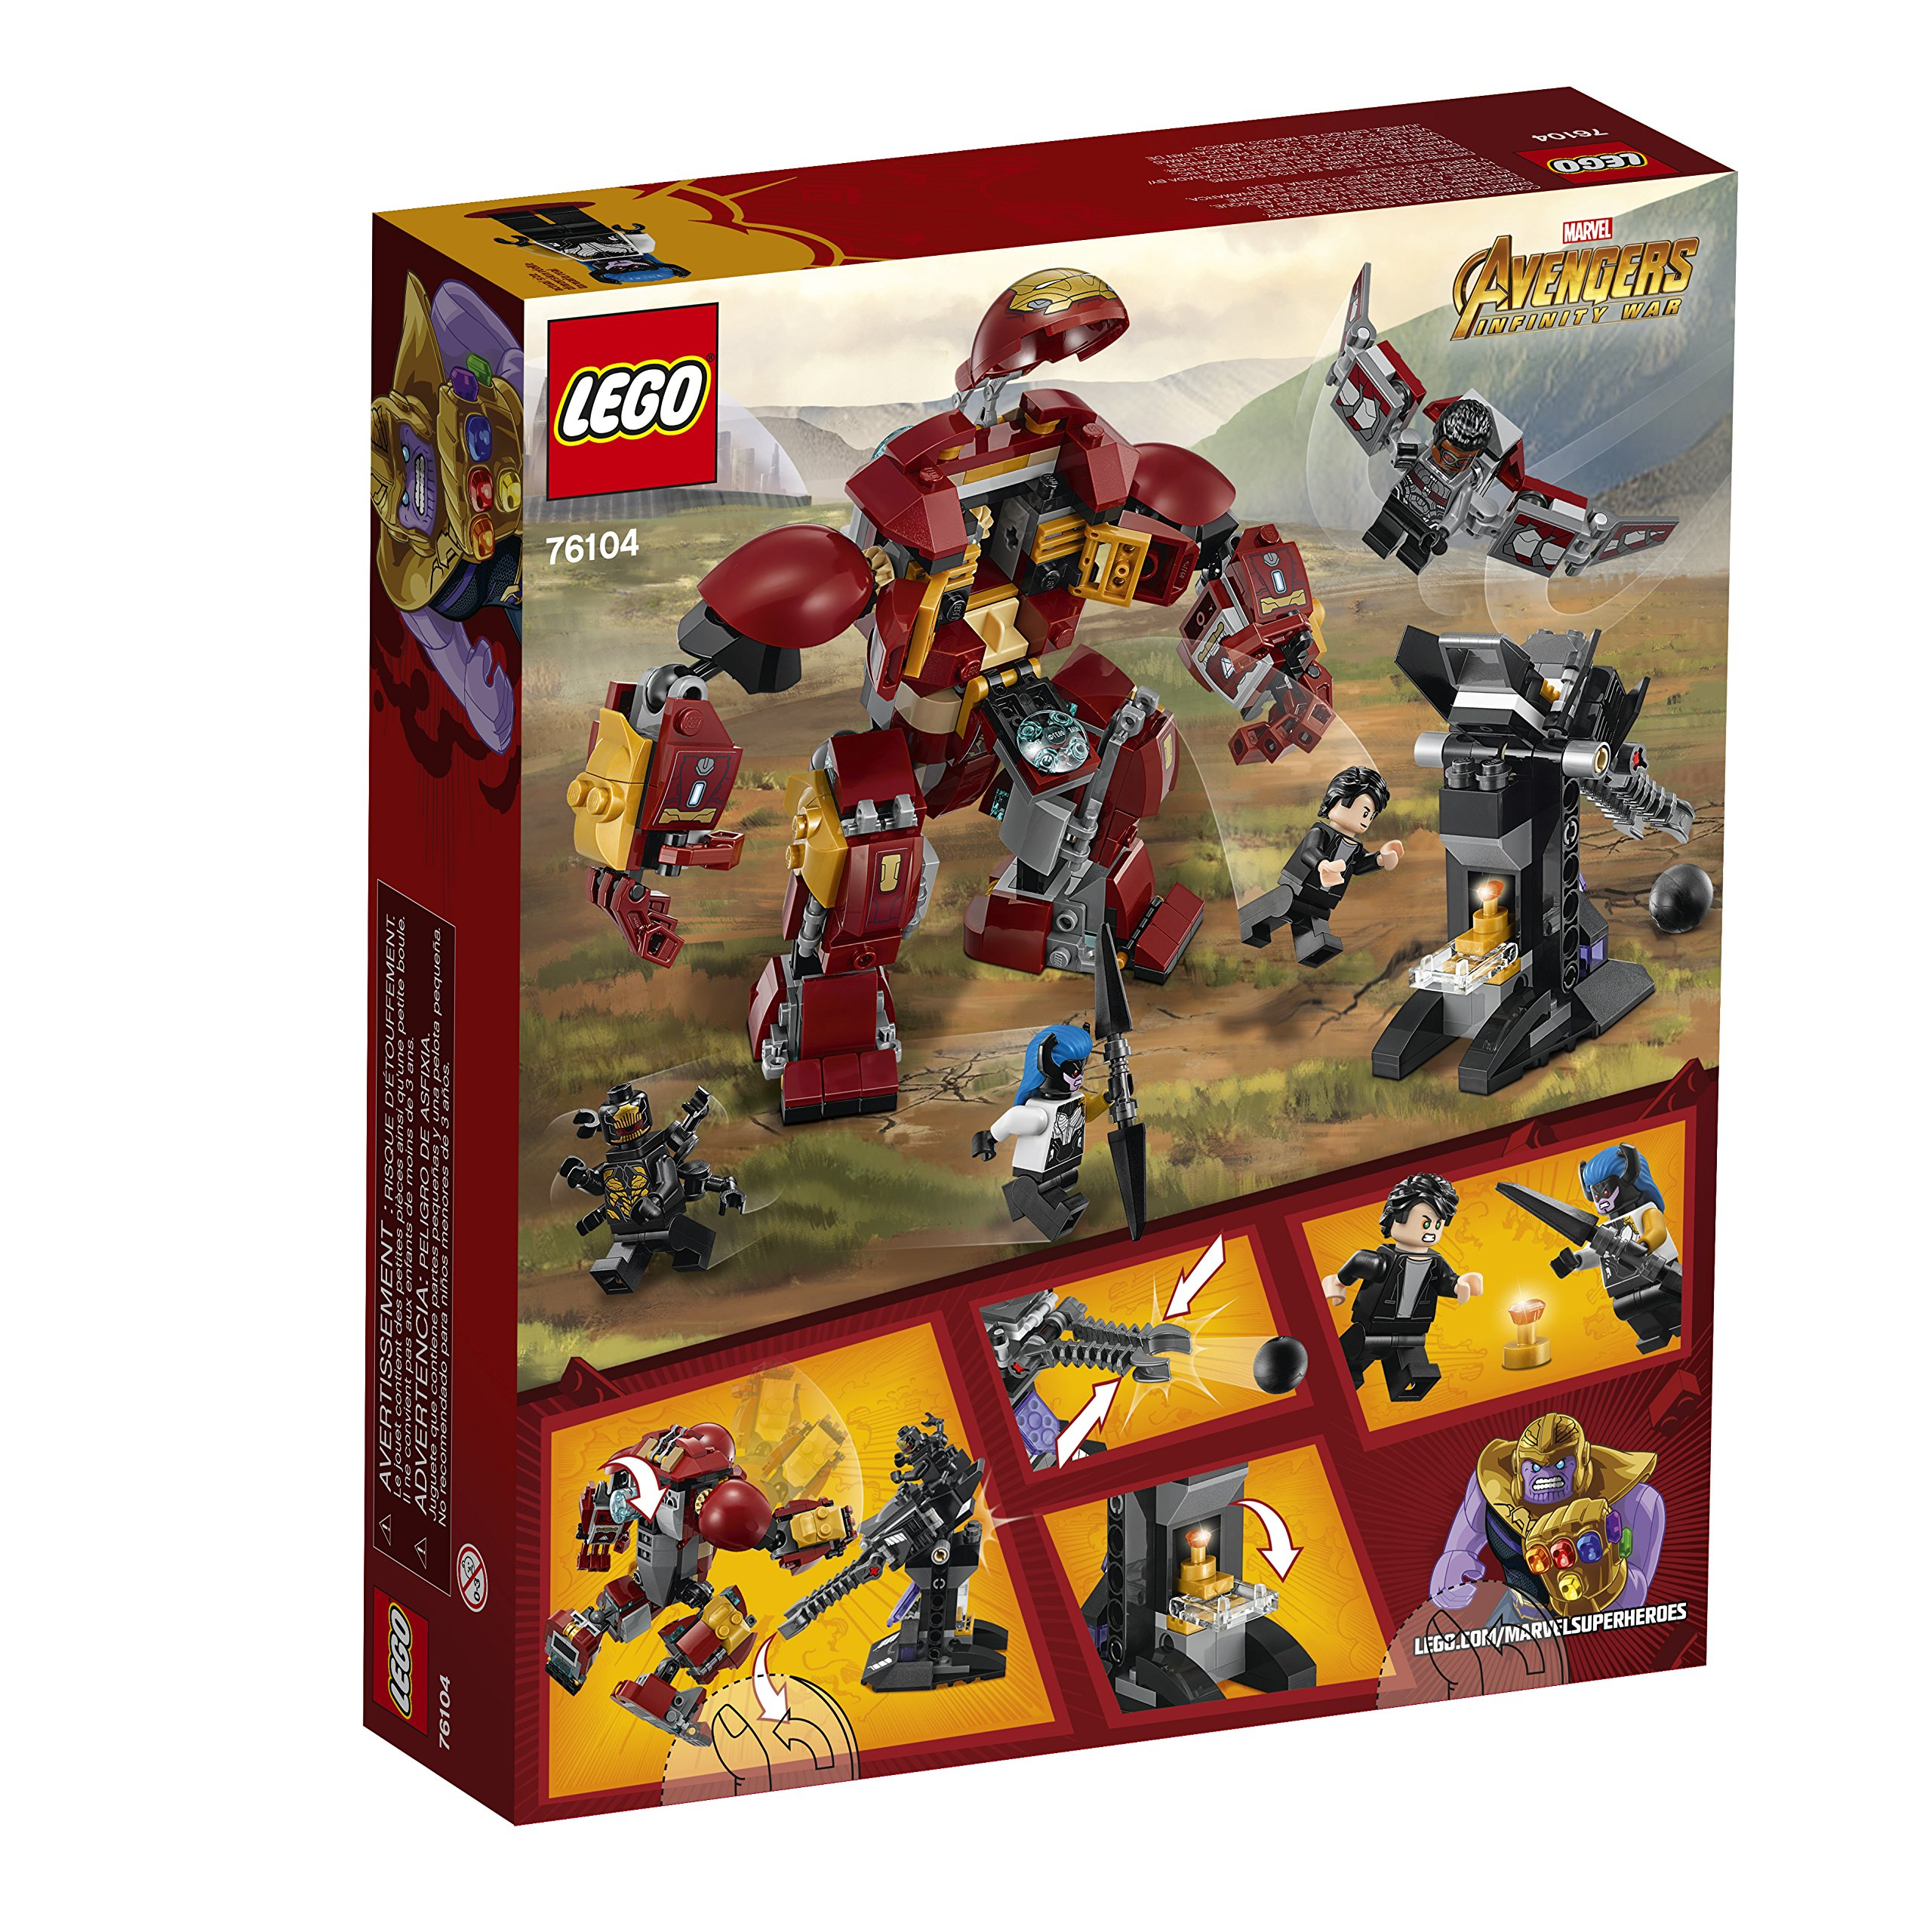 LEGO Marvel Super Heroes Avengers: Infinity War The Hulkbuster Smash-Up 76104 Building Kit (375 Piece) by LEGO (Image #9)